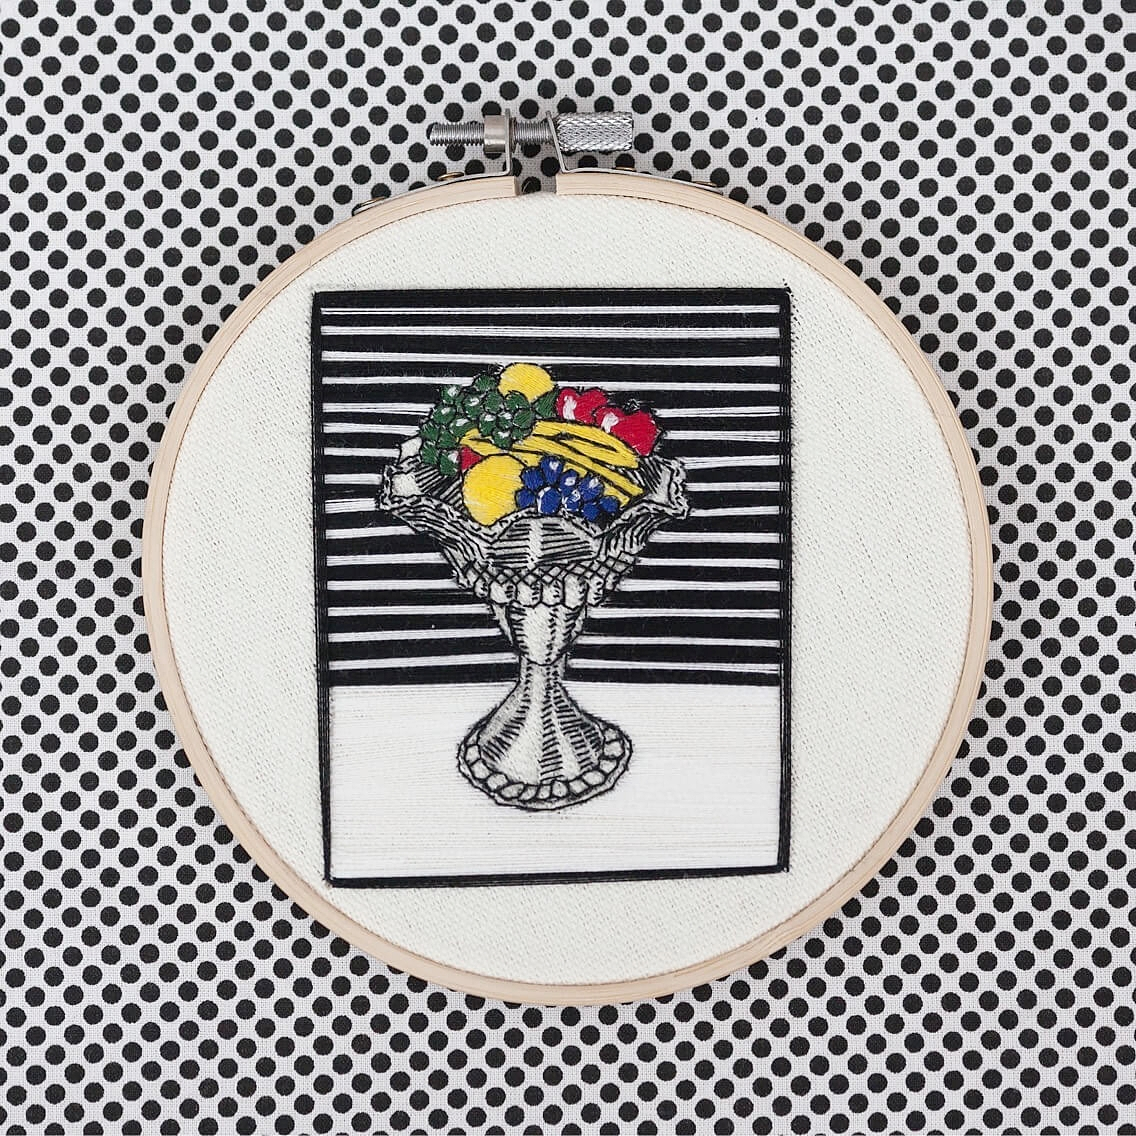 Roy Lichtenstein, Still Life with Crystal Bowl, 1973